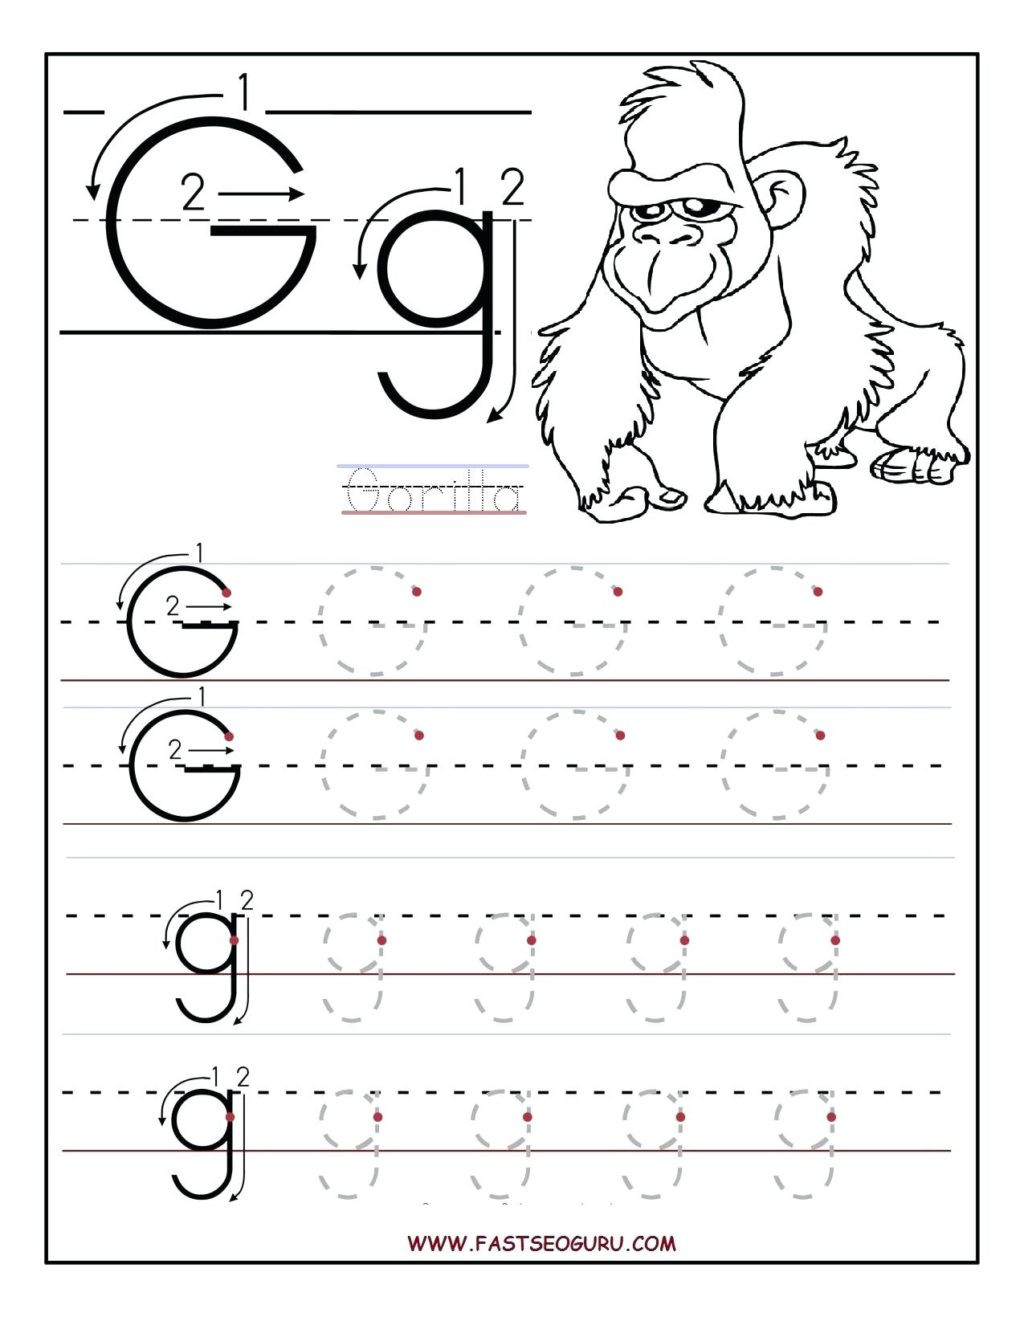 Timeline Worksheets for 1st Grade Worksheet First Grade Math Worksheets Free 1st